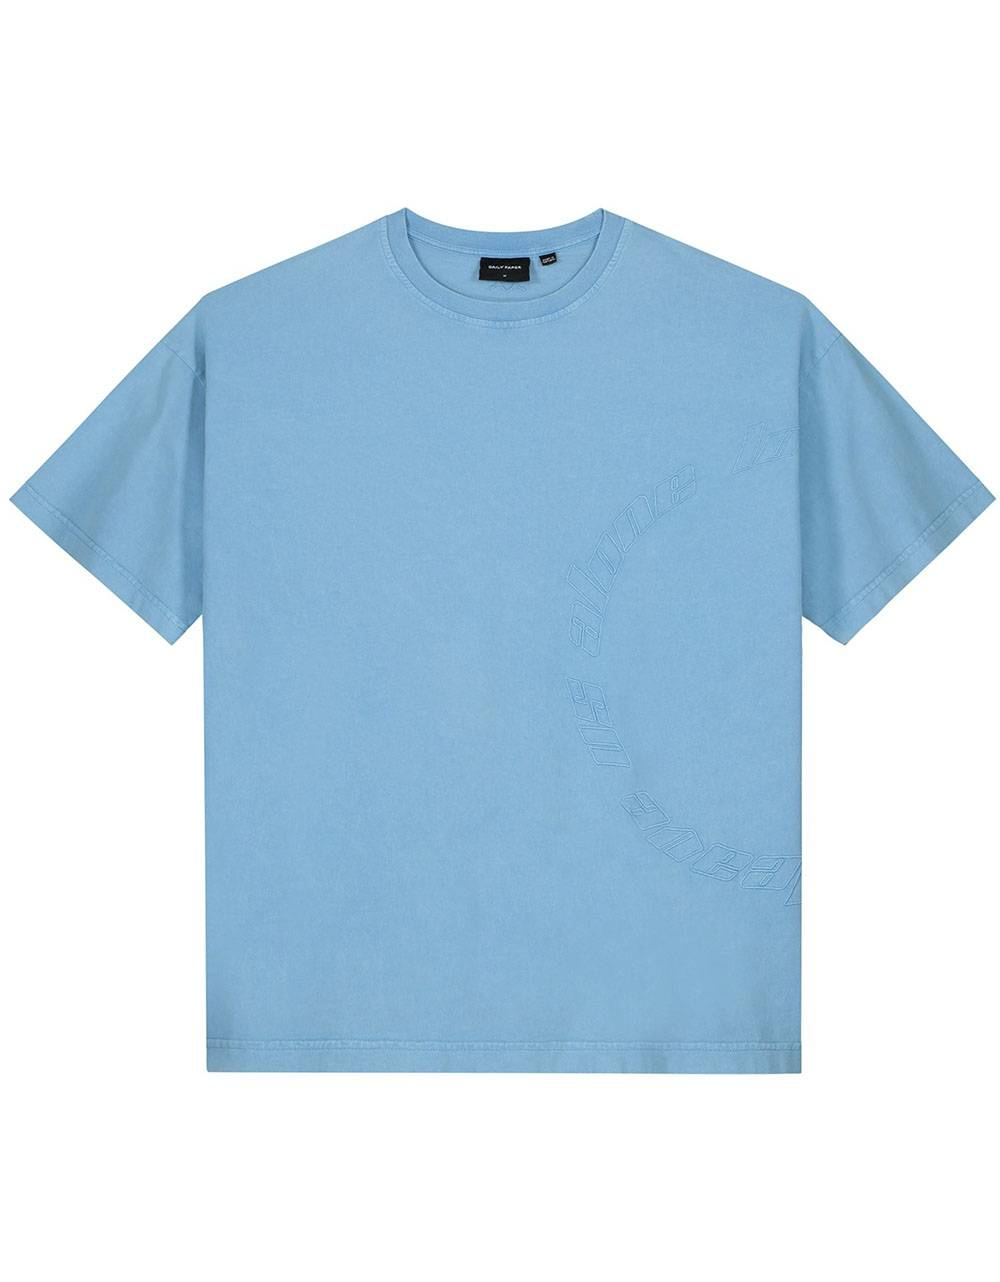 Daily Paper Kenspla tee - swedish blue DAILY PAPER T-shirt 80,00 €